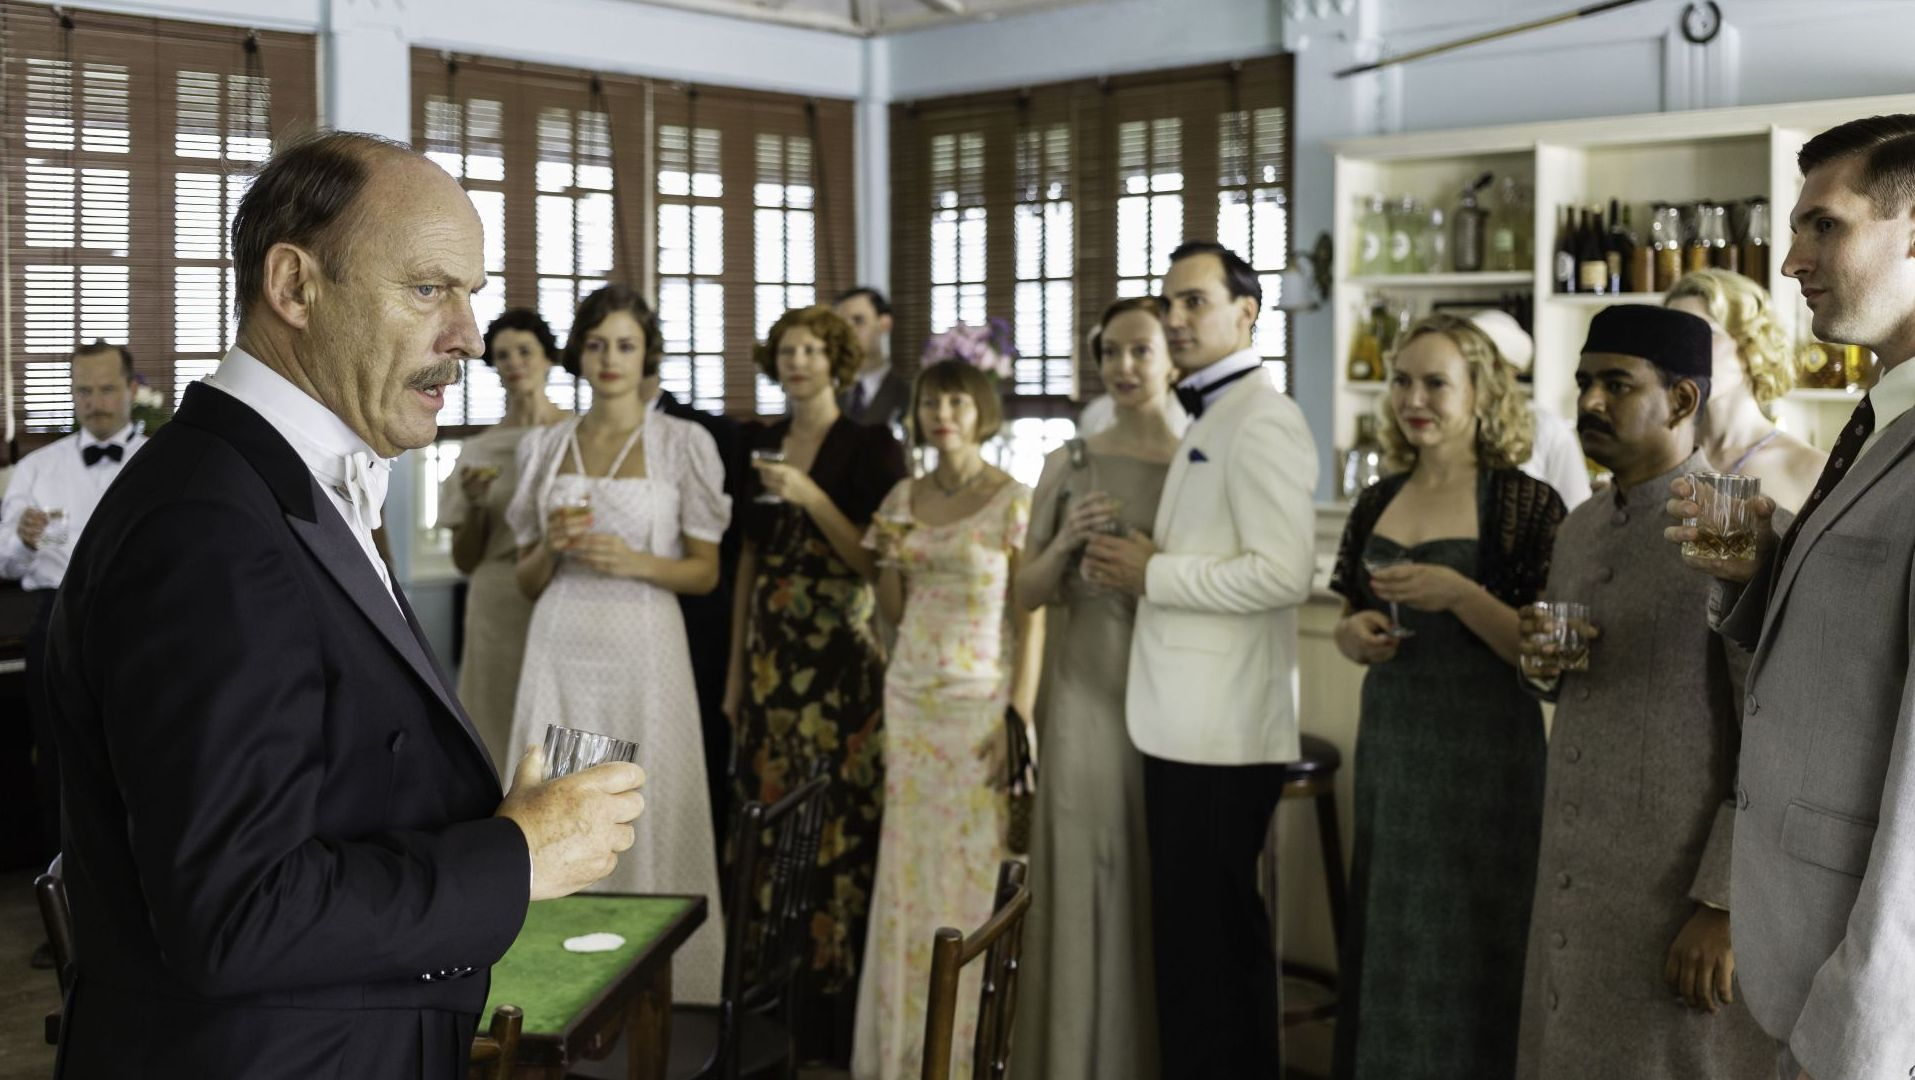 MASTERPIECE Indian Summers, Season 2 on PBS. Patrick Malahide (l) as Lord Willingdon, the Viceroy in British India. Henry Lloyd-Hughes (center in cream tuxedo jacket) plays Ralph Whelan, secretary to the Viceroy.